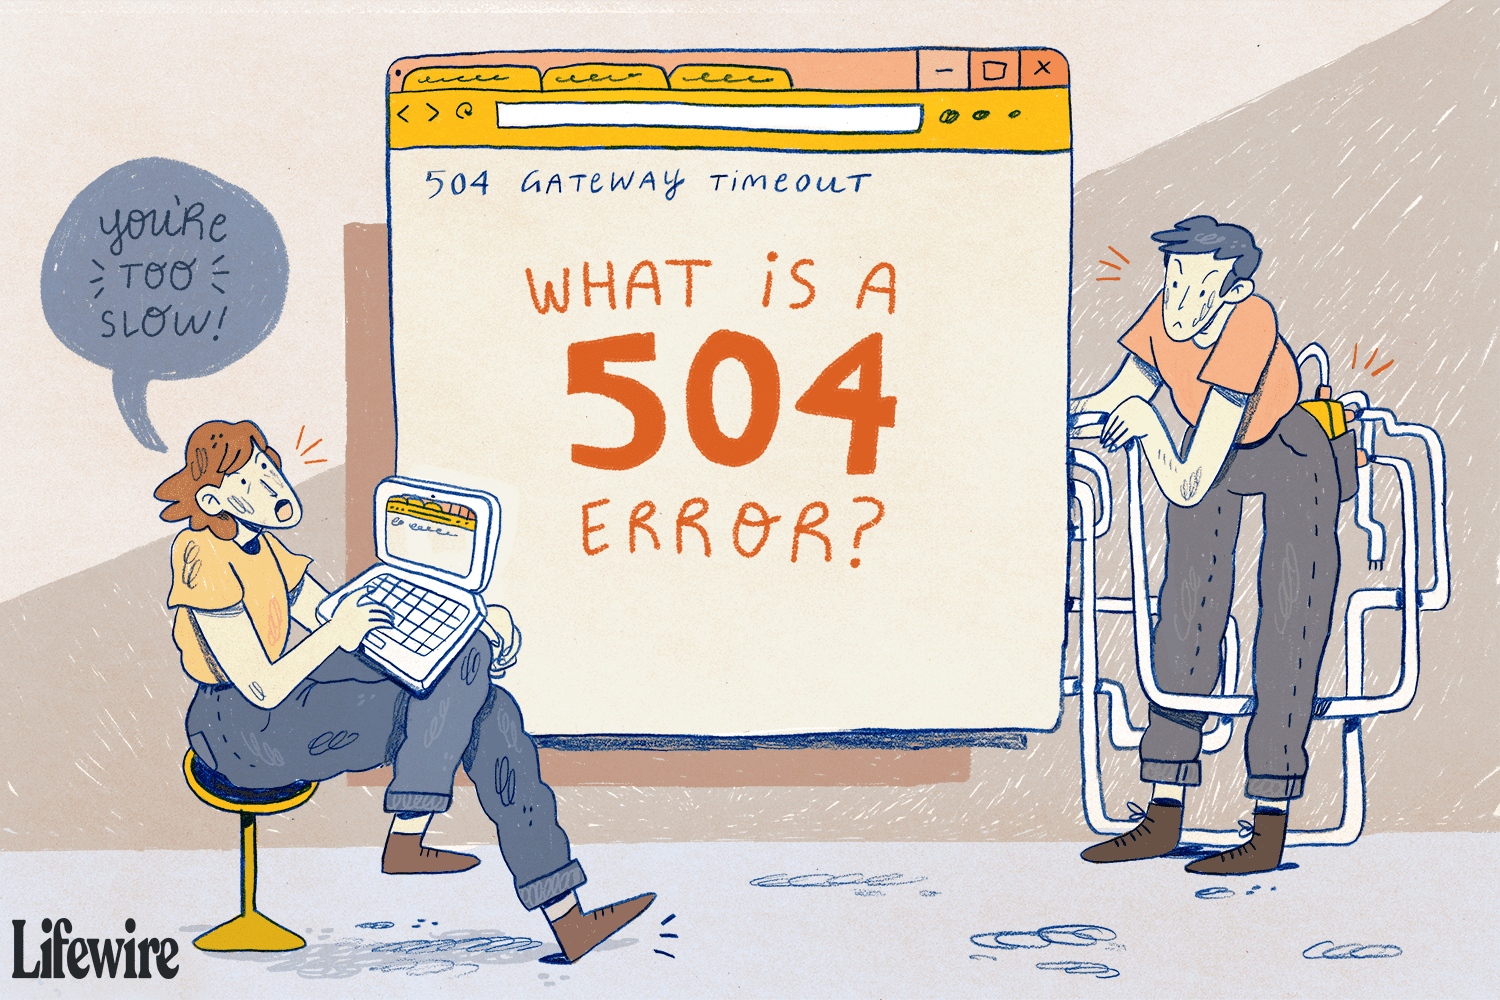 An illustration of a person being slow to serve up a website resulting in a 504 error.